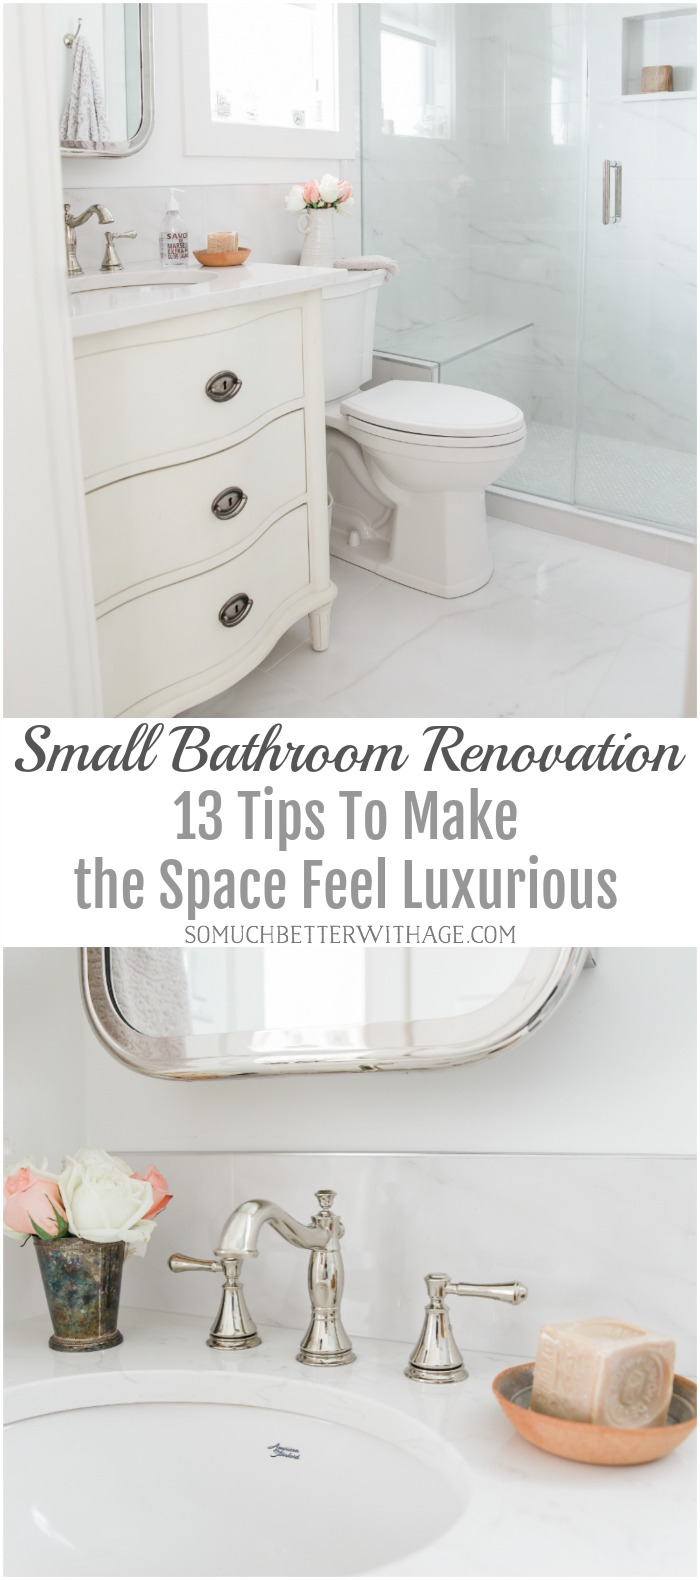 Small Bathroom Renovation - 13 Tips to Make the Space Feel Luxurious - So Much Better With Age